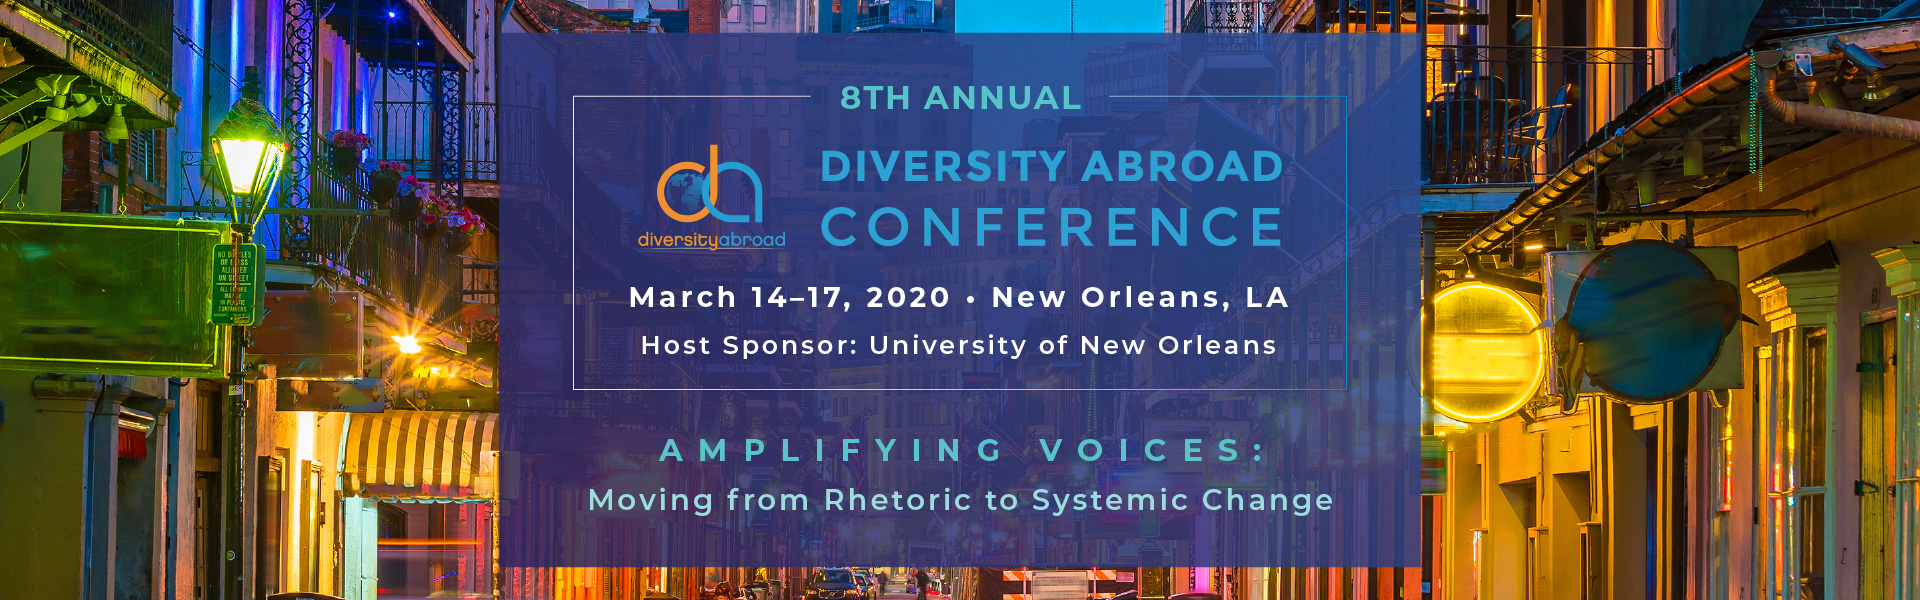 8th Annual Diversity Abroad Conference